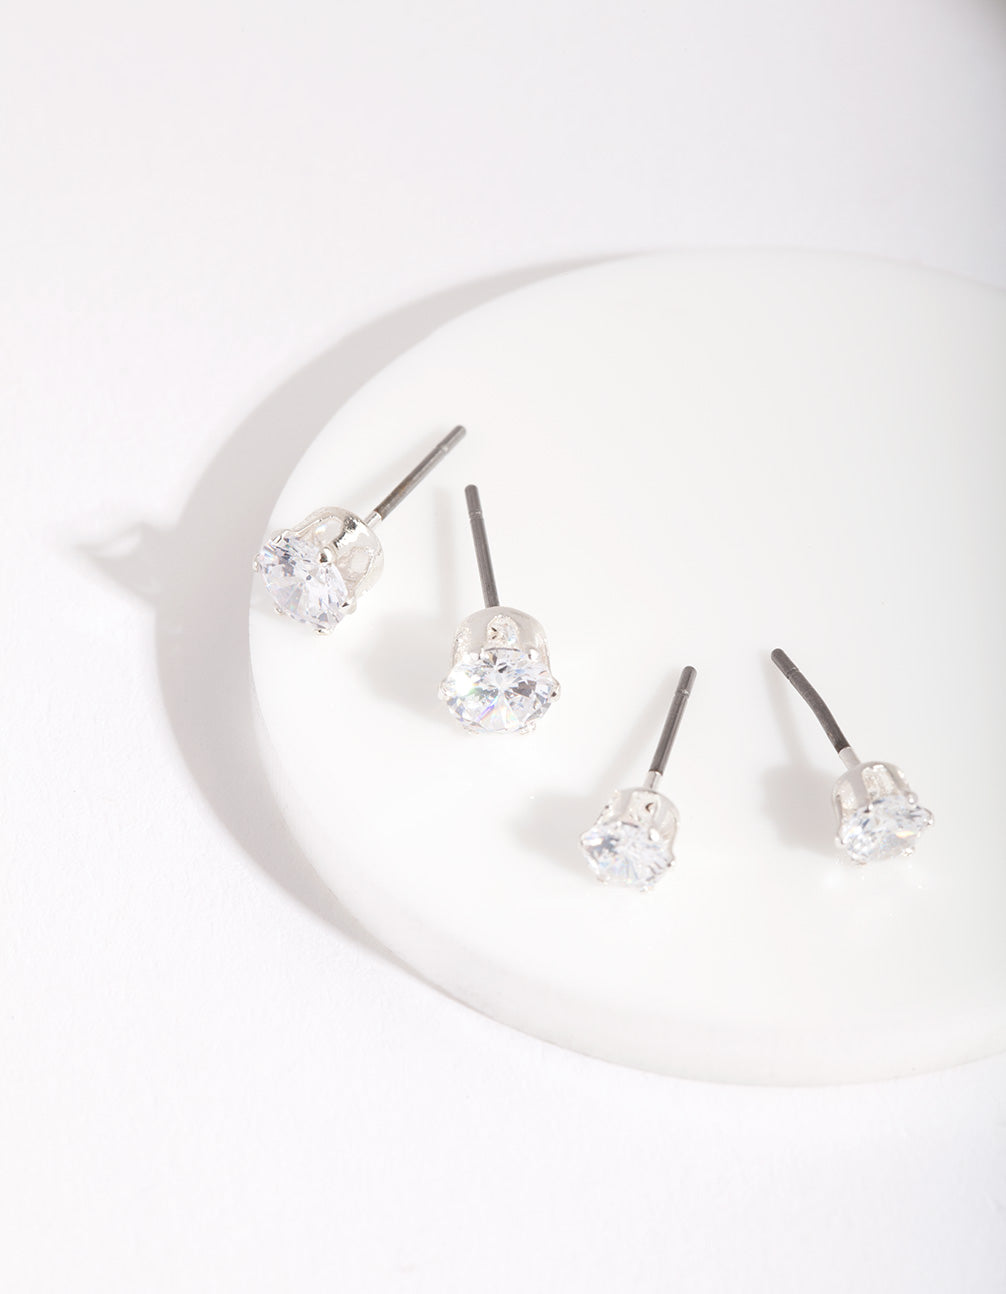 Silver Cubic Zirconia Round Stud Earring 2 Pack